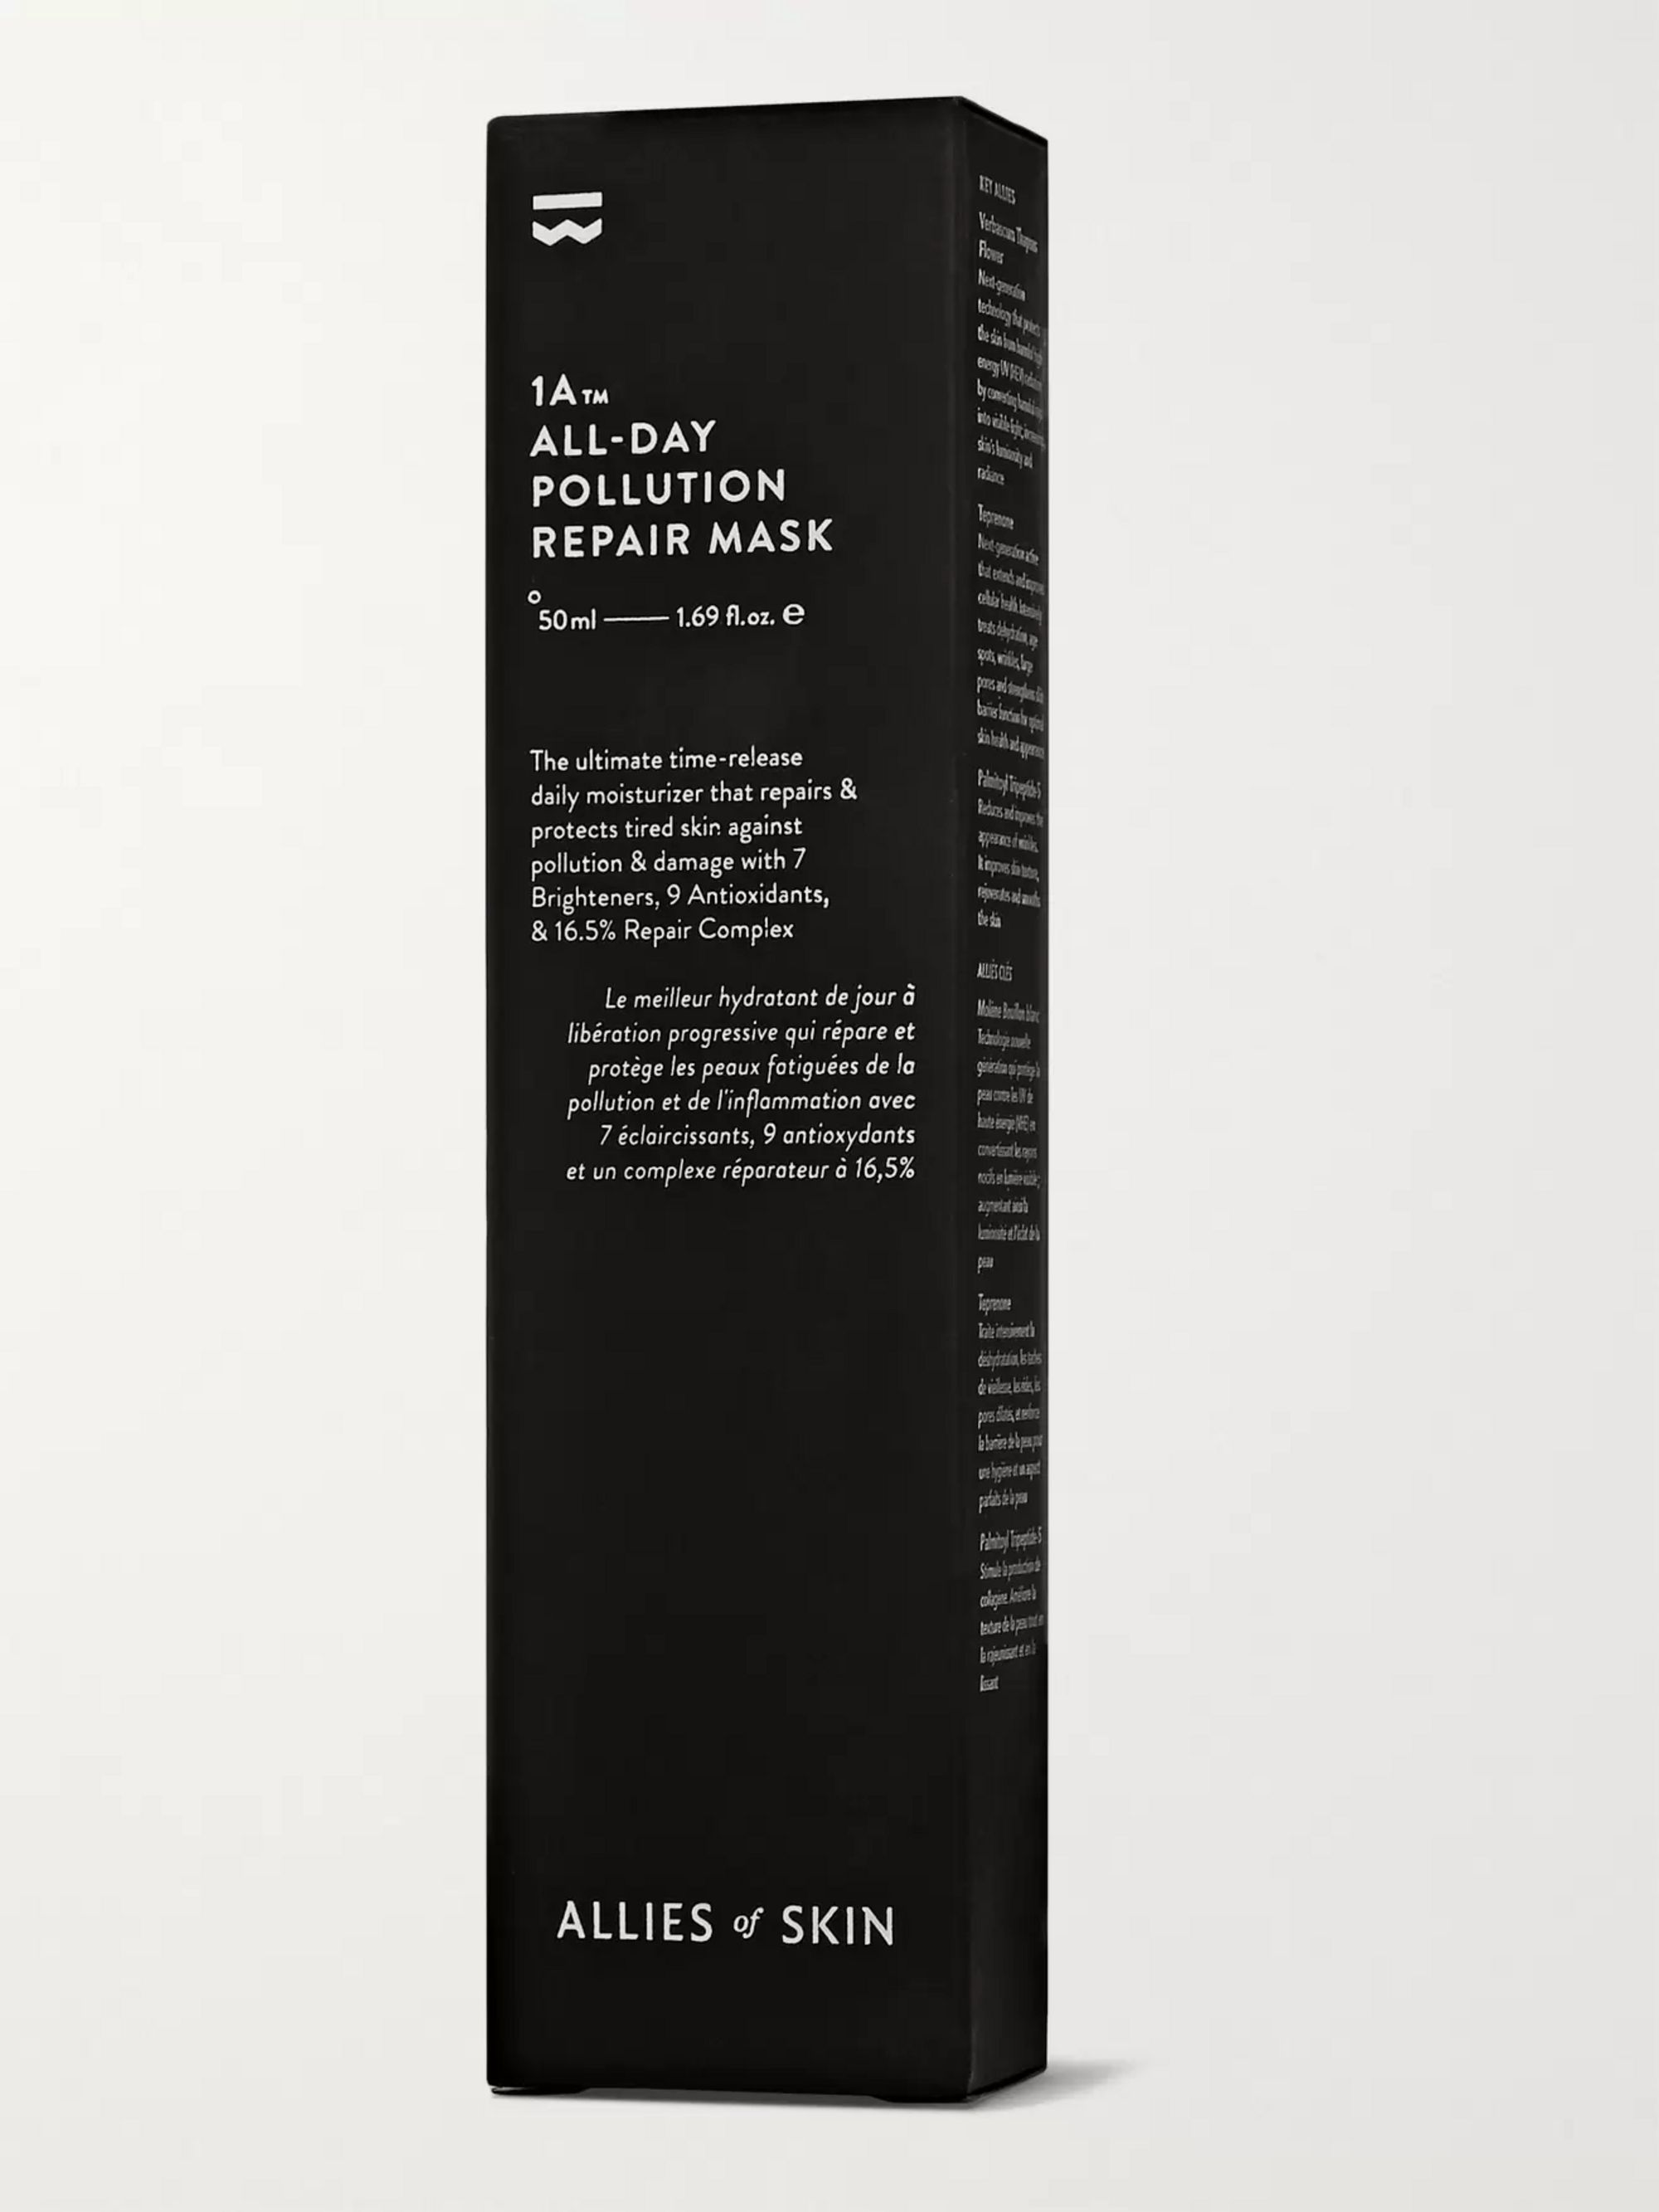 Allies of Skin 1A All-Day Mask, 50ml